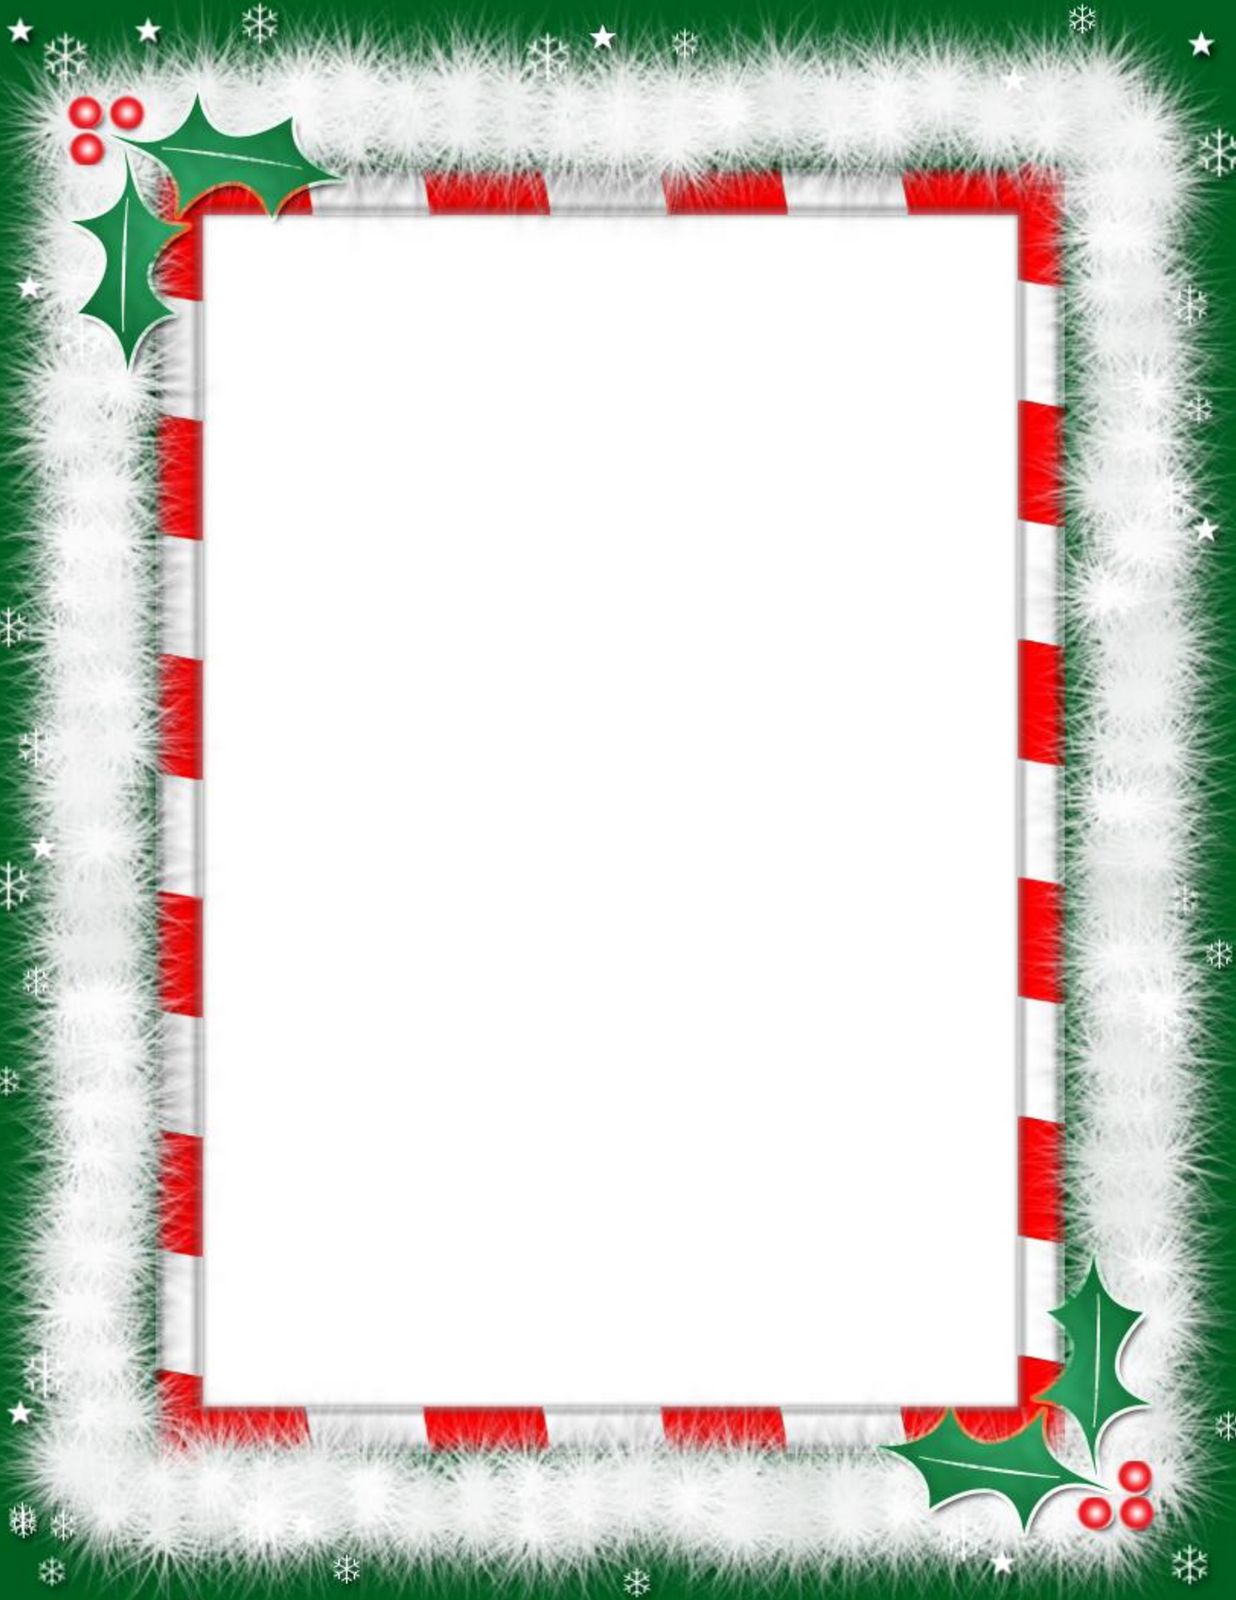 Free Christmas Chevron Border Templates Including Printable Border Paper  And Clip Art Versions. Description From  Free Xmas Menu Templates